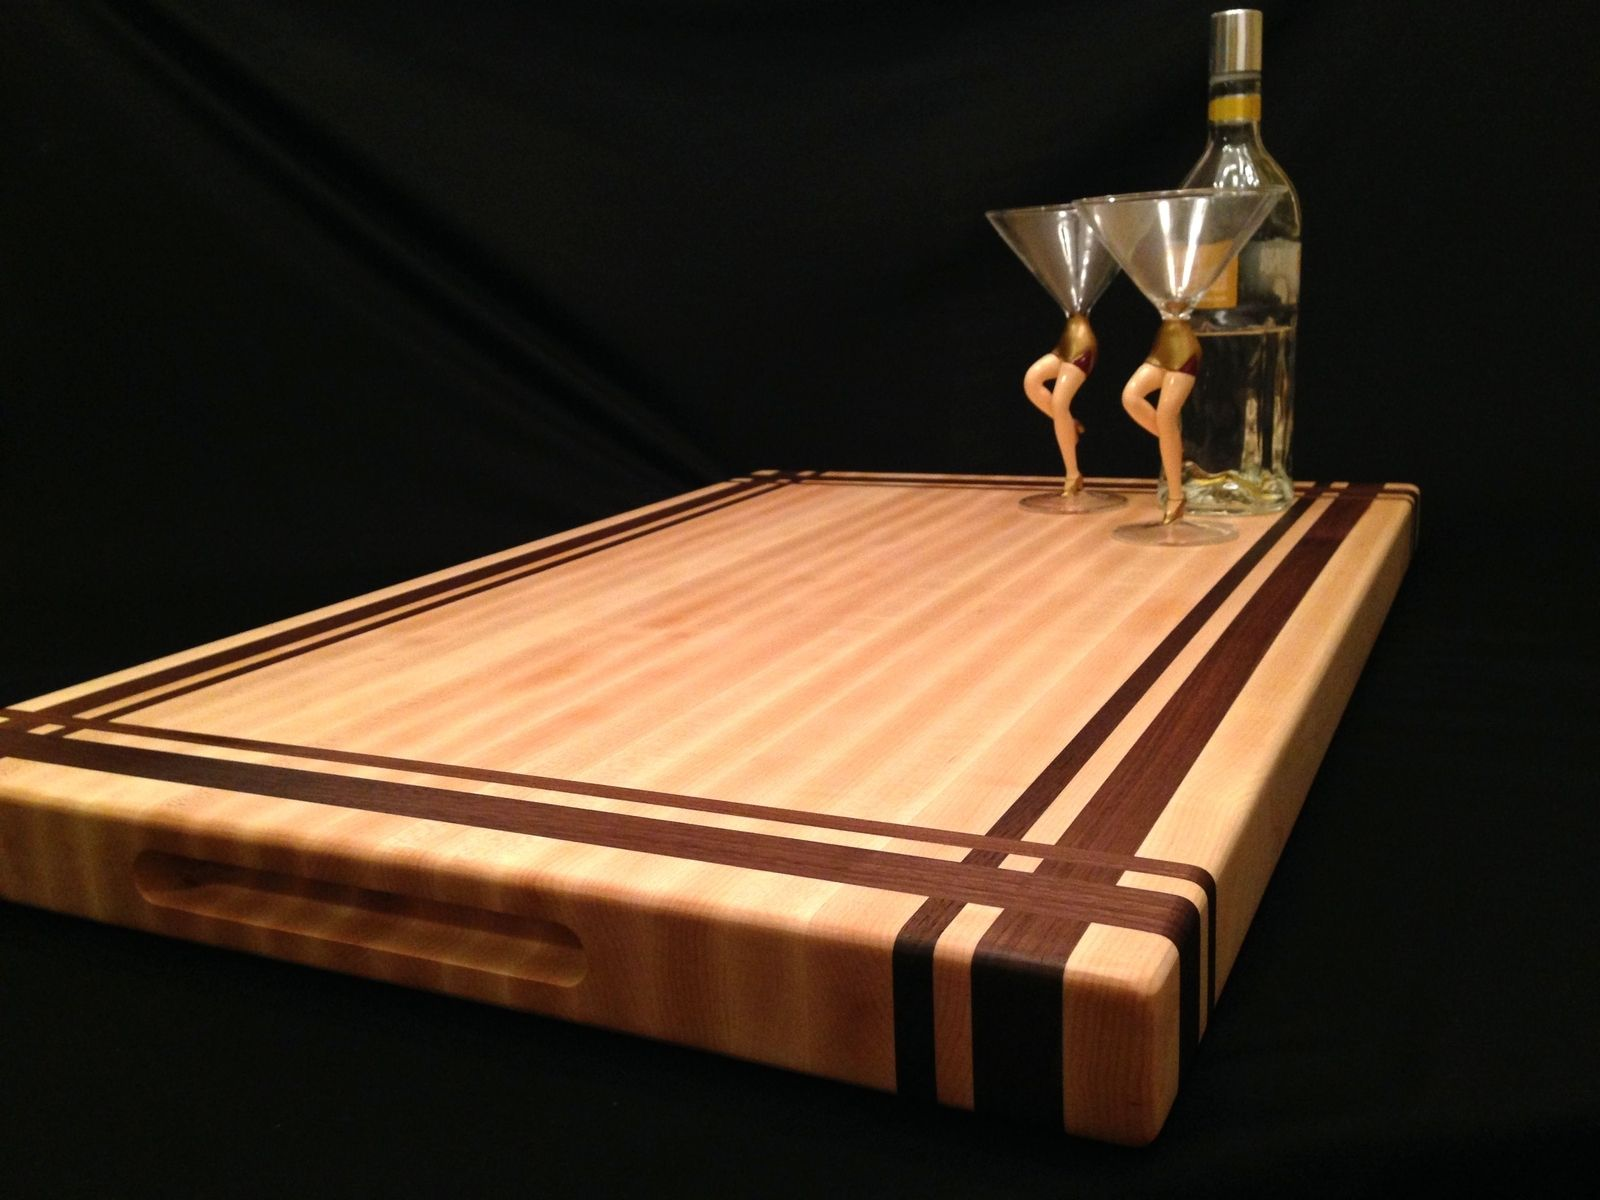 custom cutting boards  handmade wood cutting boards  custommade, Kitchen design